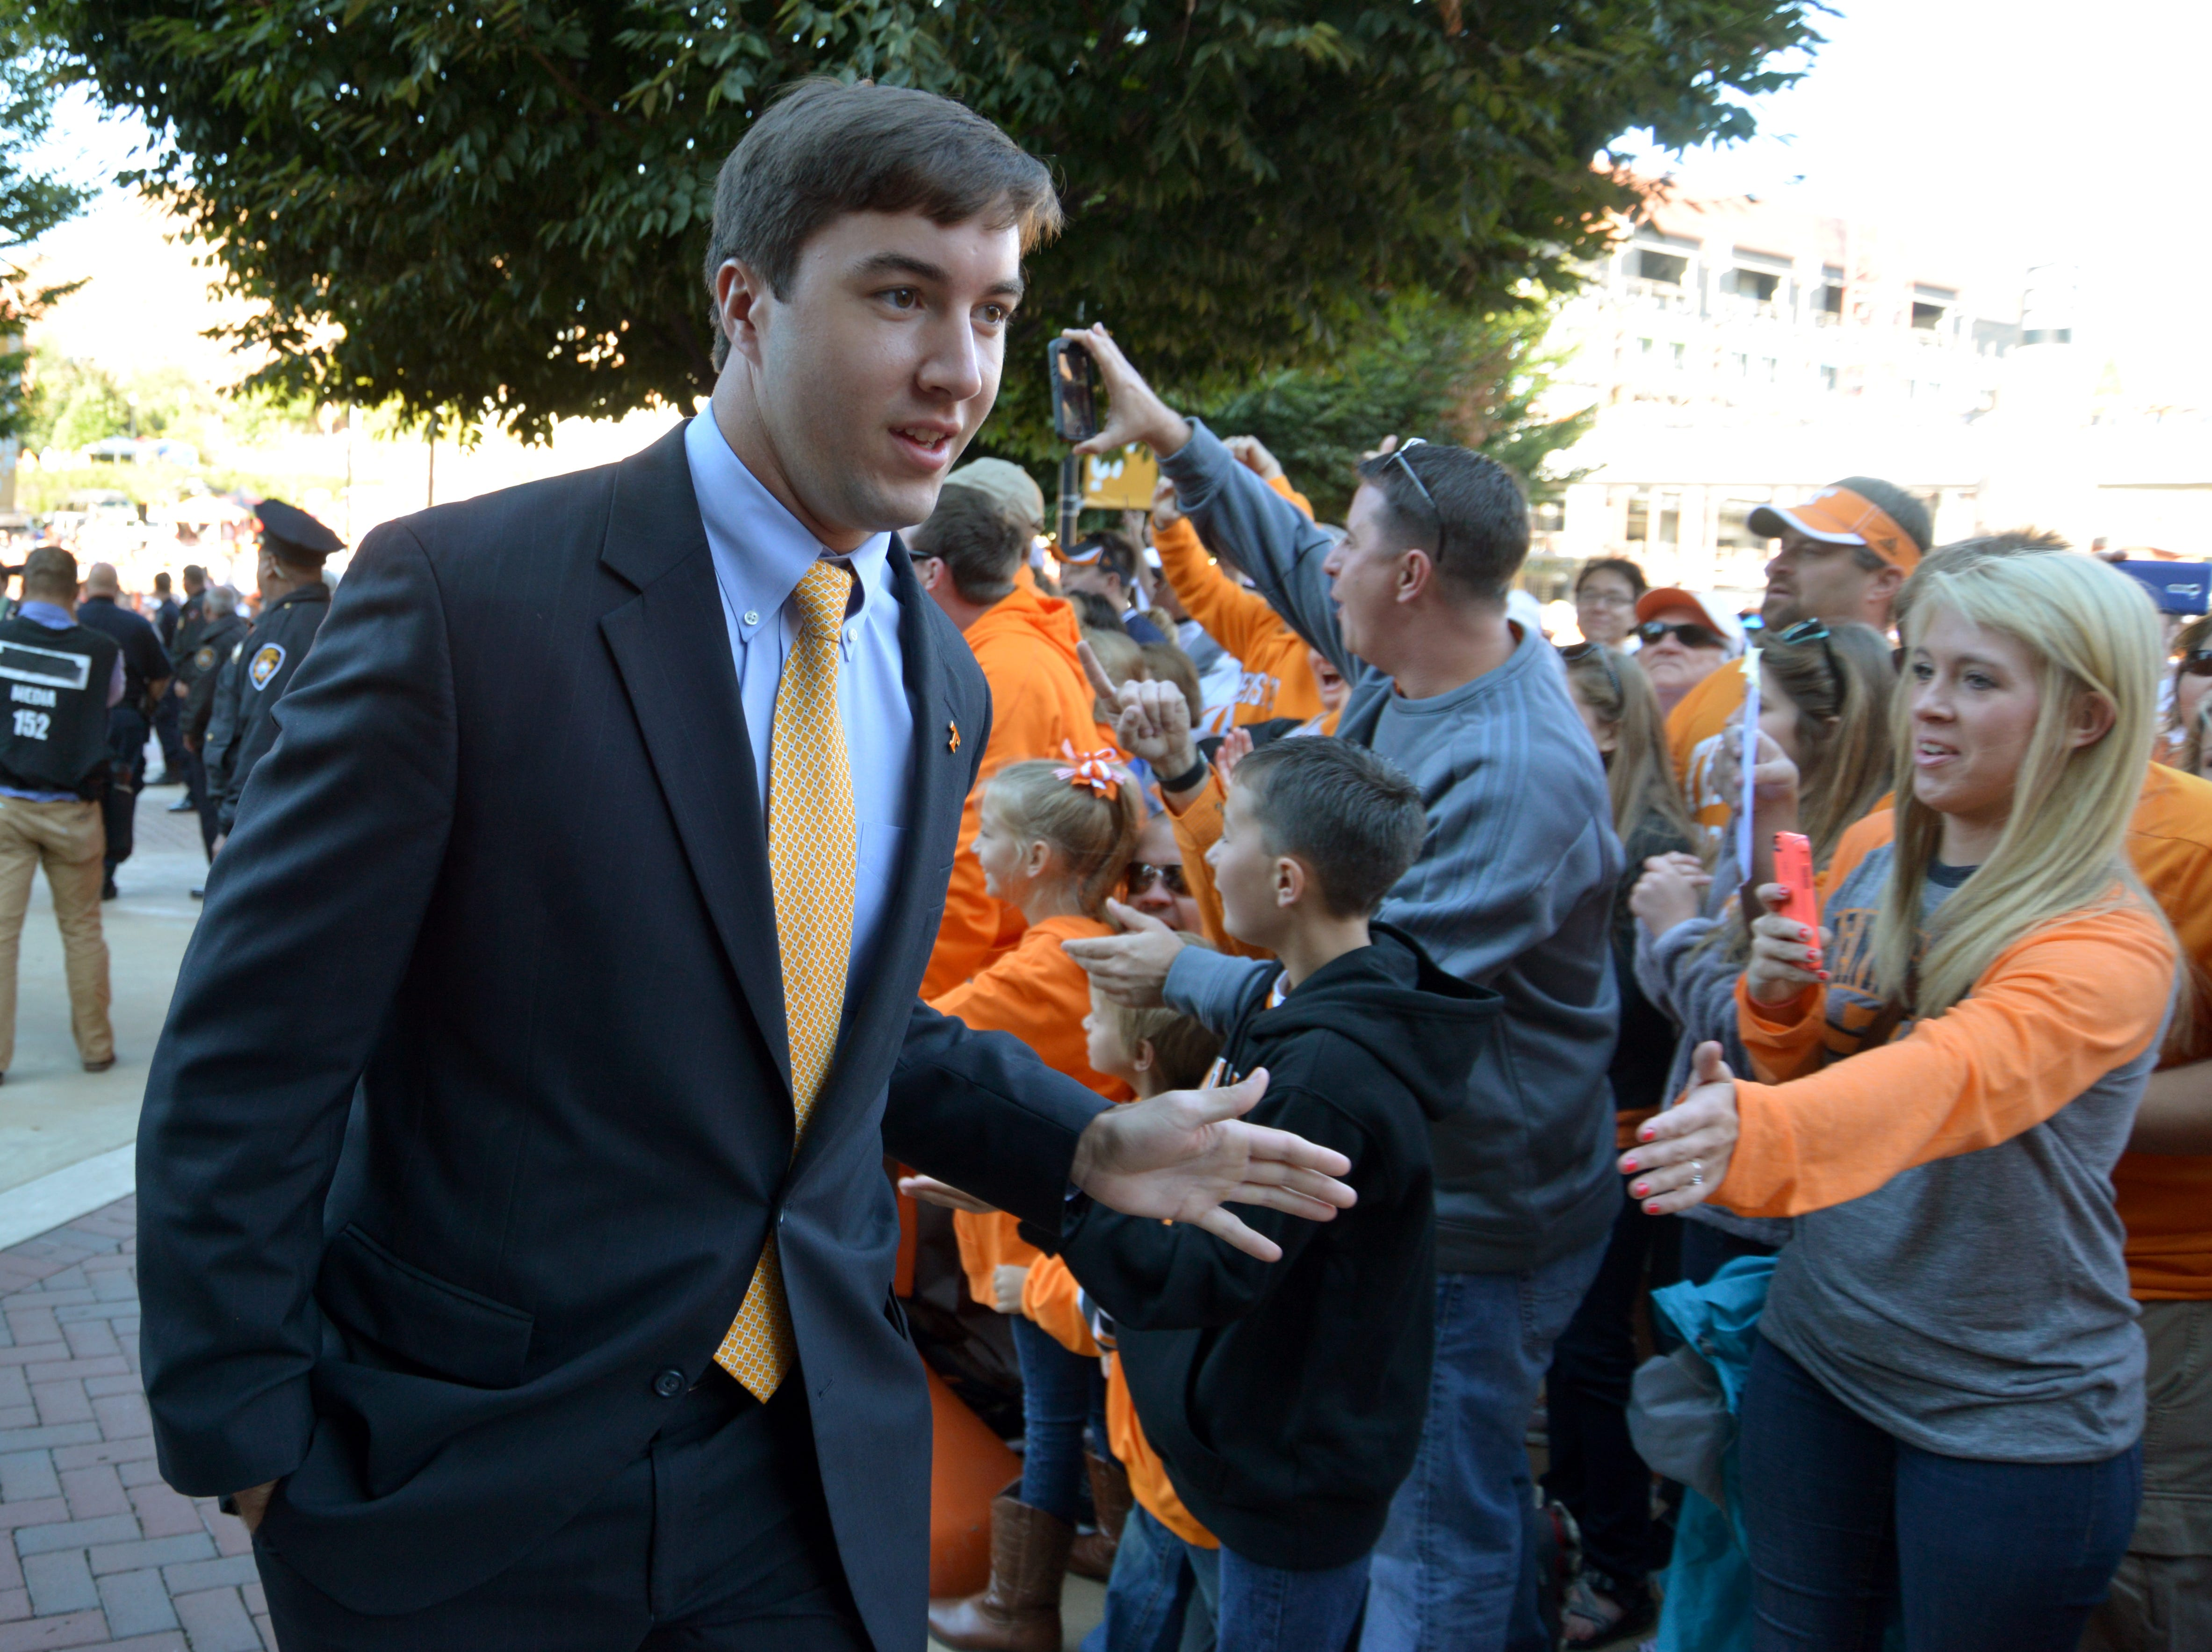 Tennessee quarterback Justin Worley (14) during the Vol Walk before their game against Florida in Neyland Stadium, Saturday, Oct. 4, 2014 in Knoxville, Tenn.